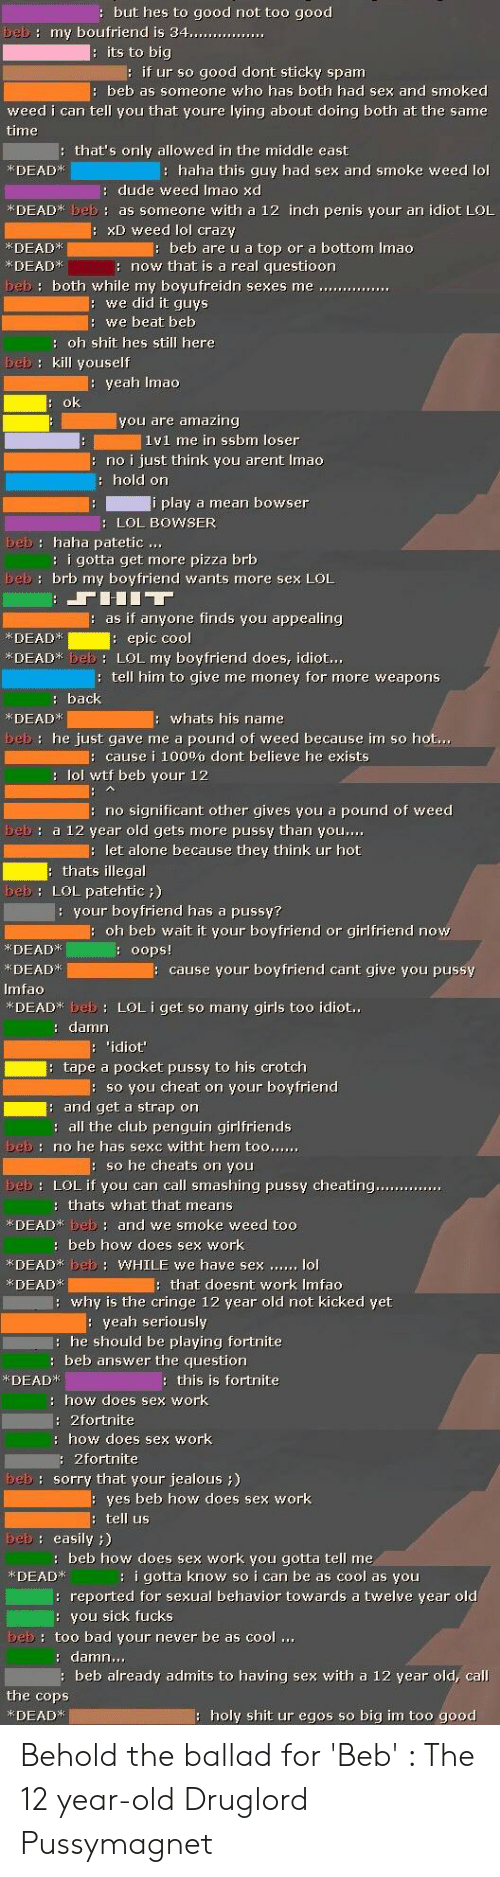 """Being Alone, Anaconda, and Bad: but hes to good not too good  beb: my boufriend is 34  ur so good dont sticky spam  beb as someone who has both had sex and smoked  weed i can tell you that youre lying about doing both at the same  time  that's only allowed in the middle east  KDEADk  : haha this guy had sex and smoke weed lol  dude weed Imao xd  *DEADK beb: as someone with a 12 inch penis your an idiot LOL  xD weed lol crazy  KDEAD  KDEADx  beb are u a top or a bottom Imao  : now that is a real questioon  we did it guys  we beat beb  : oh shit hes still here  beb: kill youself  eah Imao  you are amazing  1y1 me in ssbm loser  no i just think you arent Imao  hold on  i play a mean bowser  LOL BOWSER  beb: haha patetic...  : i gotta get more pizza brb  beb: brb my boyfriend wants more sex LOL  as if anyone finds you appealing  KDEAD  DEADK beb: LOL my boyfriend does, idiot  epic cool  tell him to give me money for more weapons  KDEADK  whats his name  beb: he just gave me a pound of weed because im so hot...  cause i 100% dont believe he exists  : lol wtf beb your 12  no significant other gives you a pound of weed  beb a 12 year old gets more pussy than you,...  let alone because they think ur hot  thats illegal  beb: LOL patehtic)  :your boyfriend has a pussy?  oh beb wait it your boyfriend or girlfriend no  KDEADk  KDEAD  Imfao  *DEAD* beb 